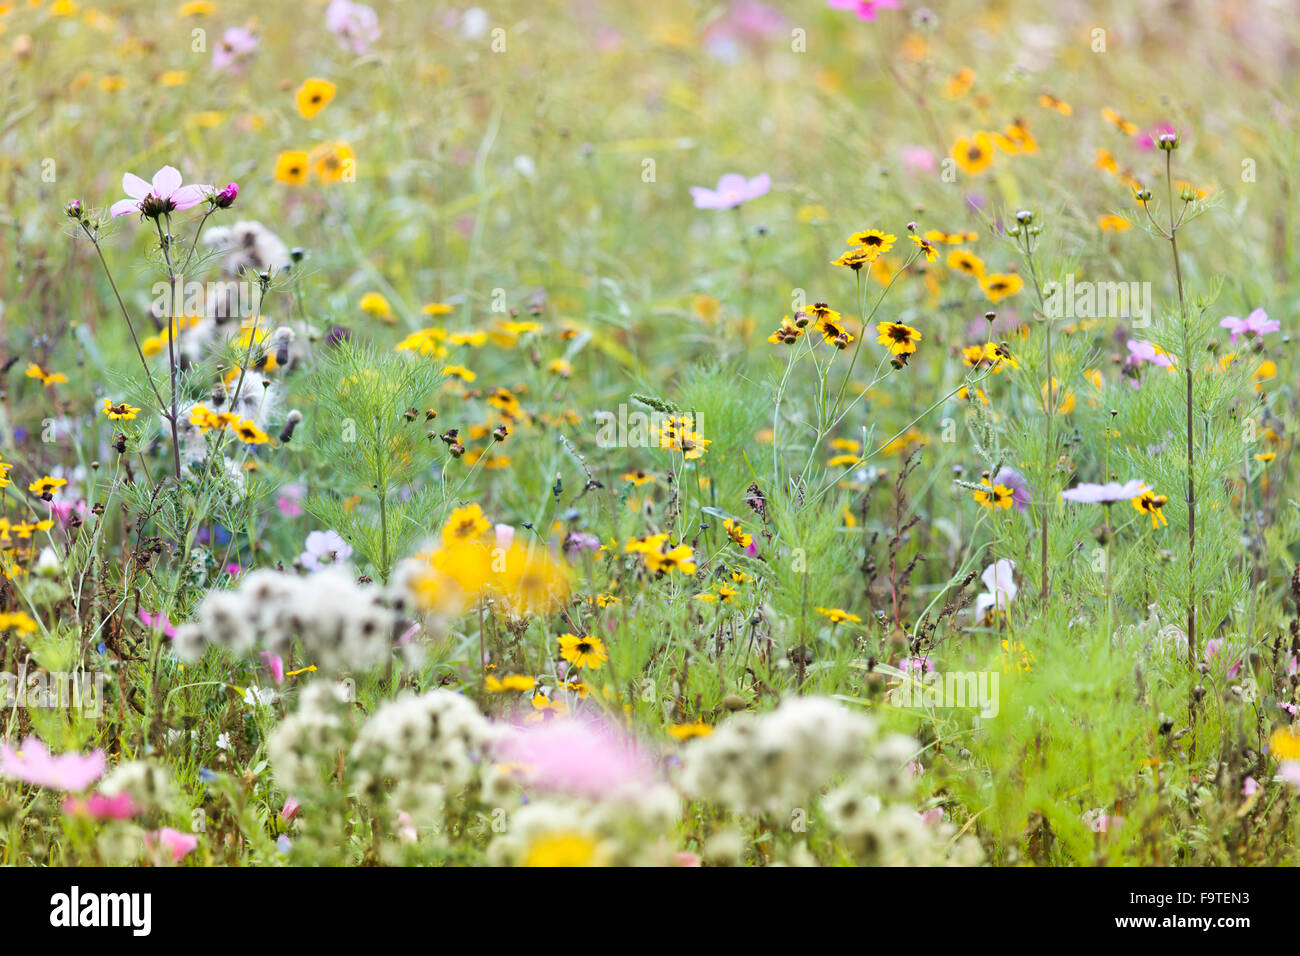 Summer Wild Meadow Flowers - Stock Image